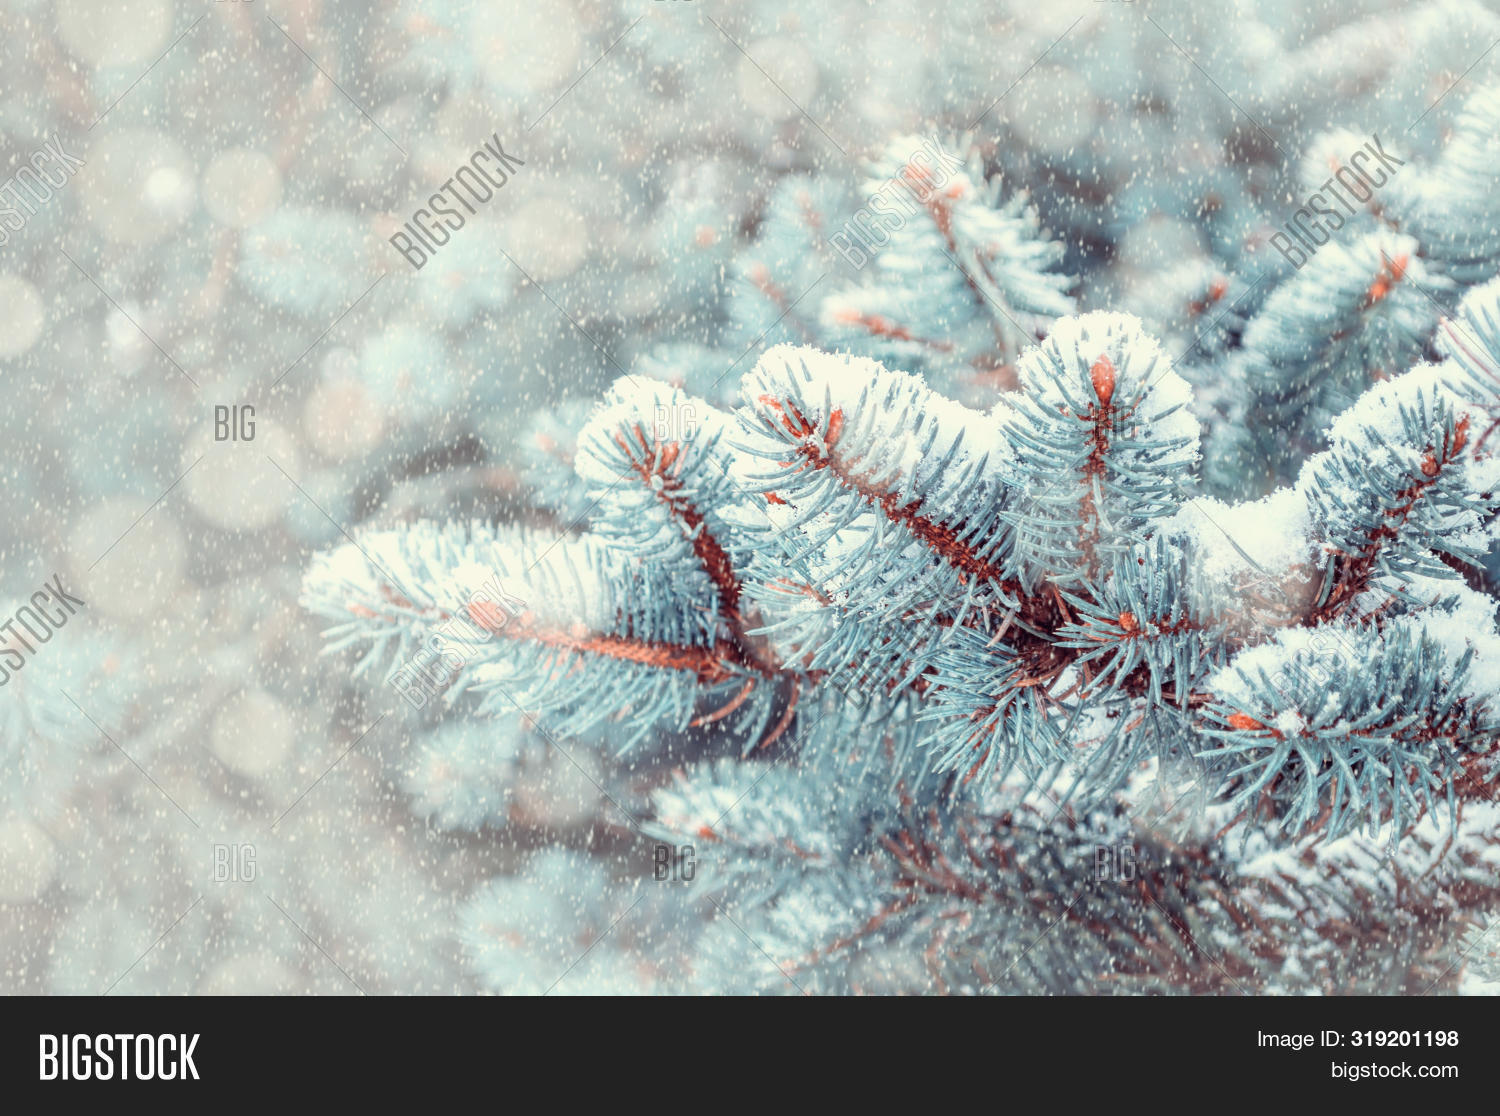 Winter Christmas landscape. Shallow DOF. Blue pine tree branches under winter snowfall, closeup of winter forest nature, free space for text, vintage tones applied